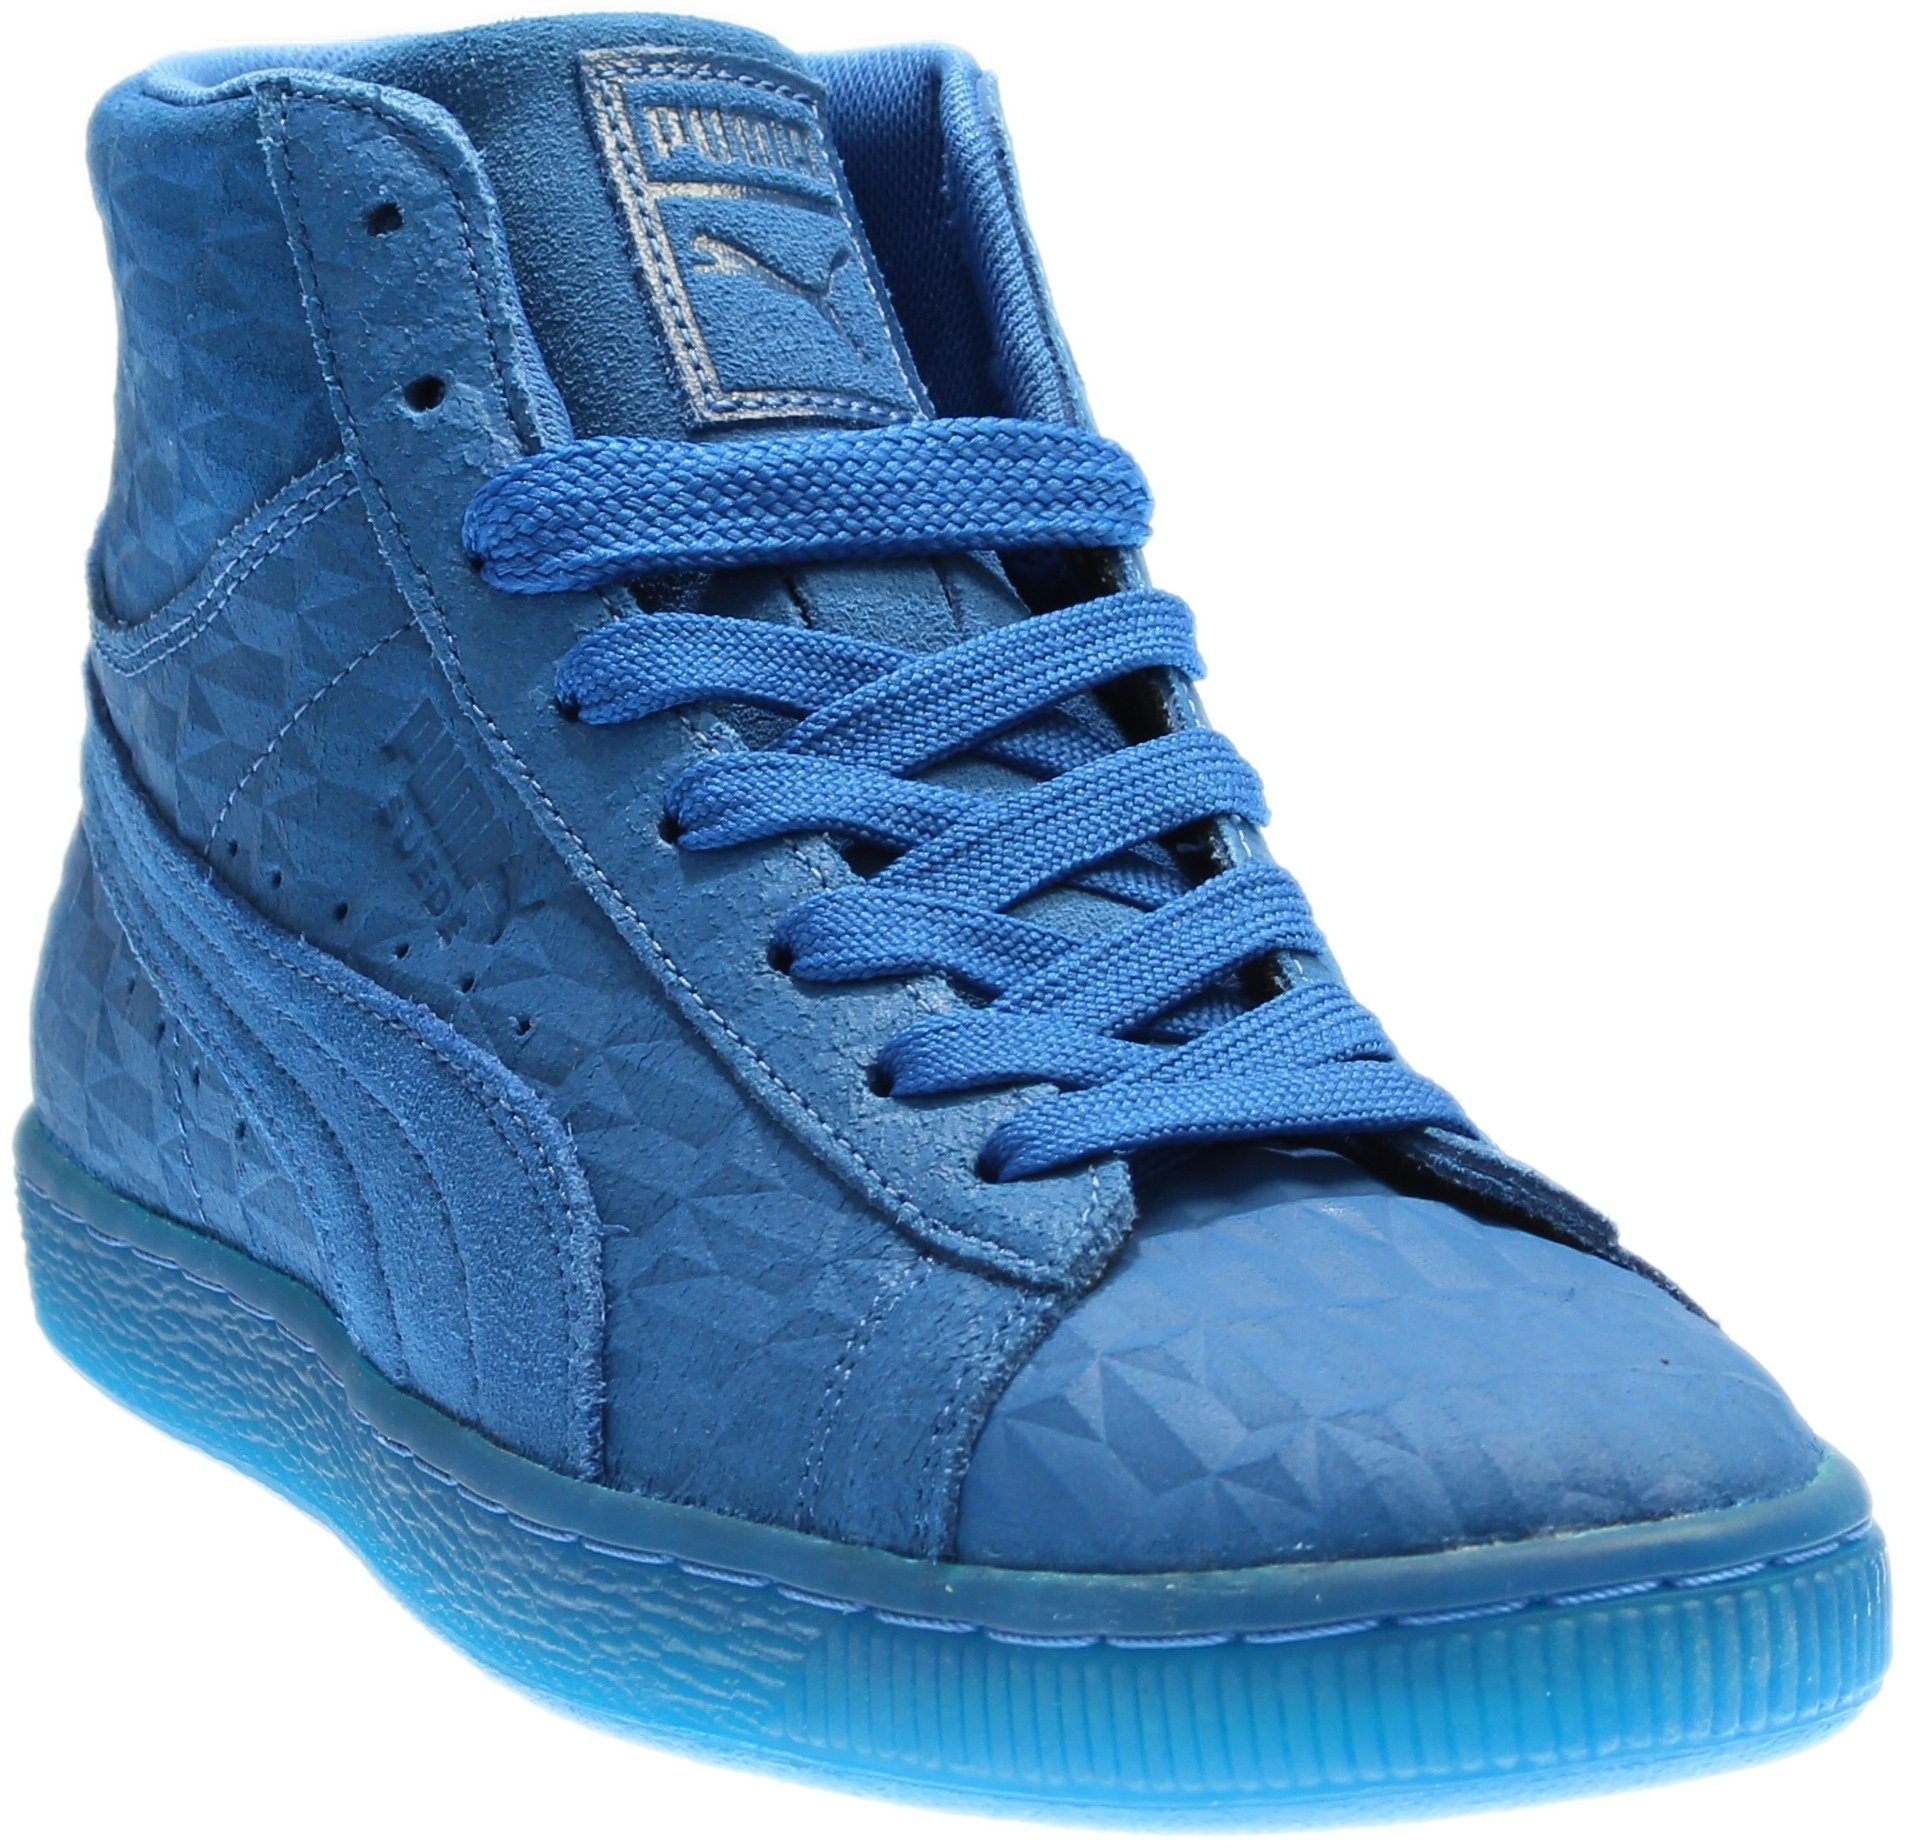 PUMA Men's Suede Mid Me Iced Royal/White Athletic Shoe